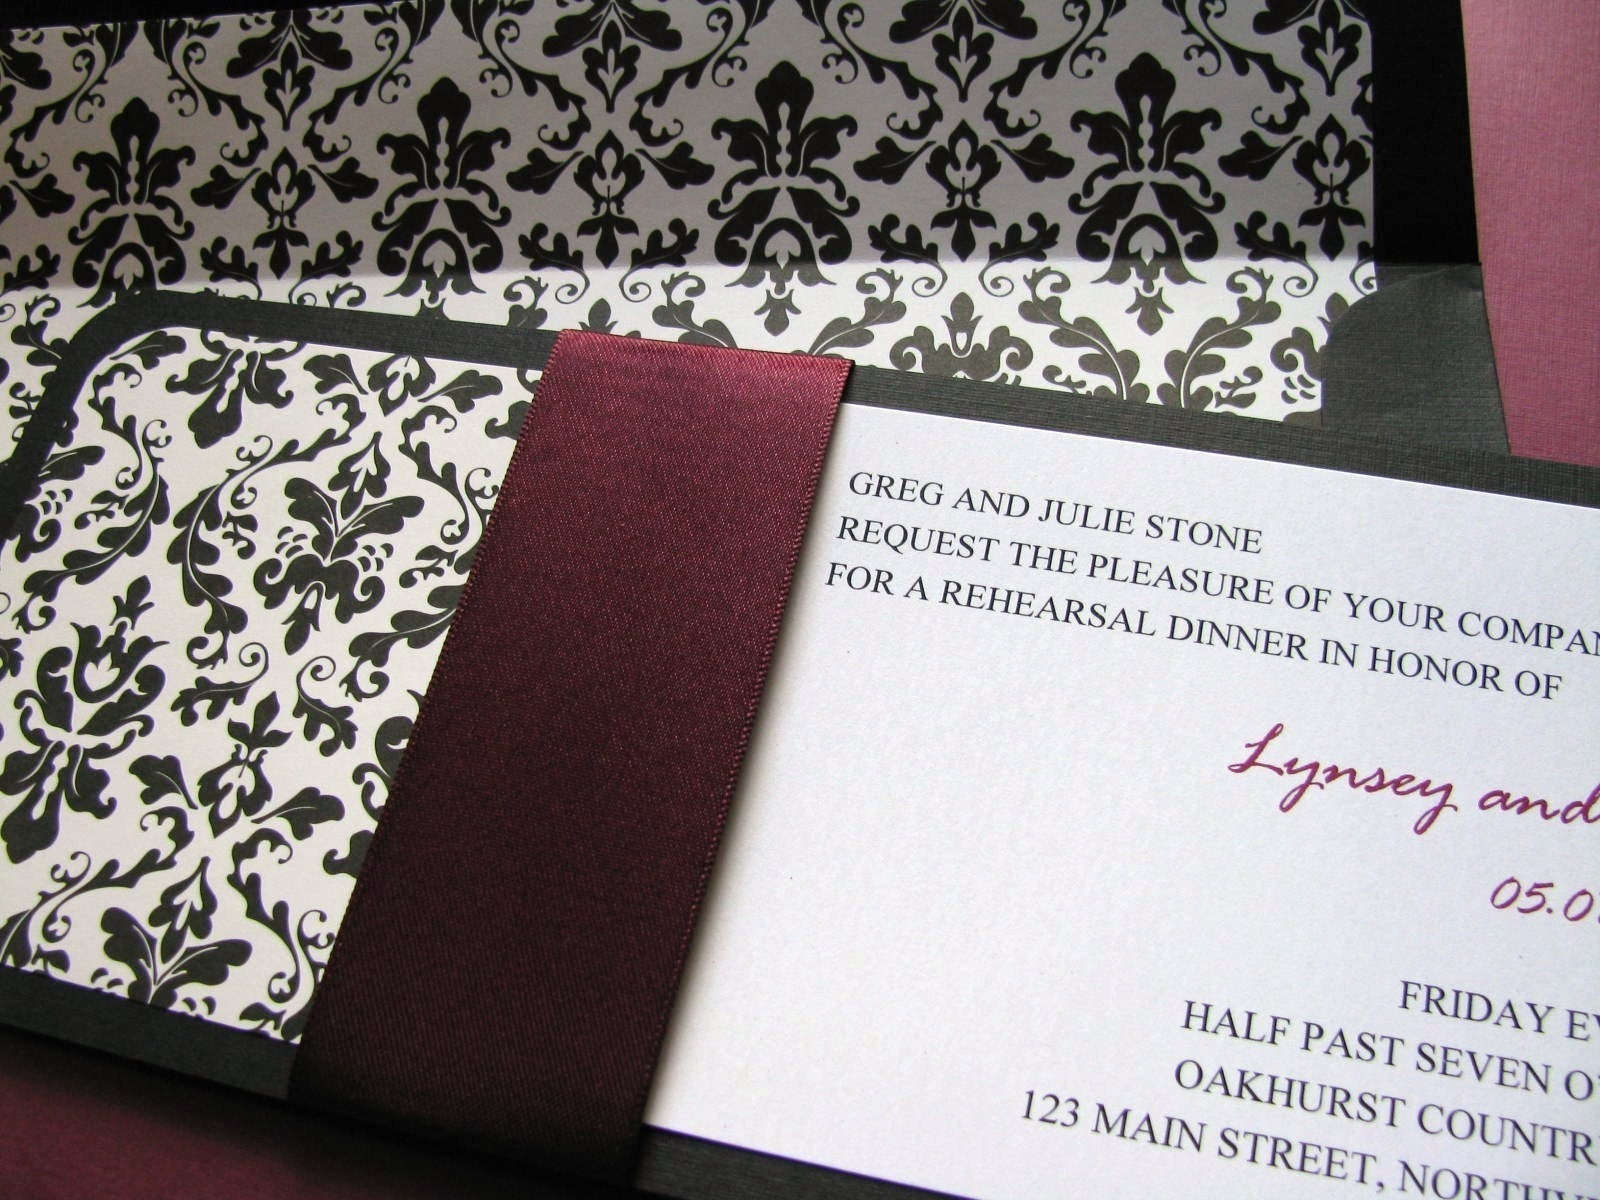 18 sets of The Plum Damask Invitation